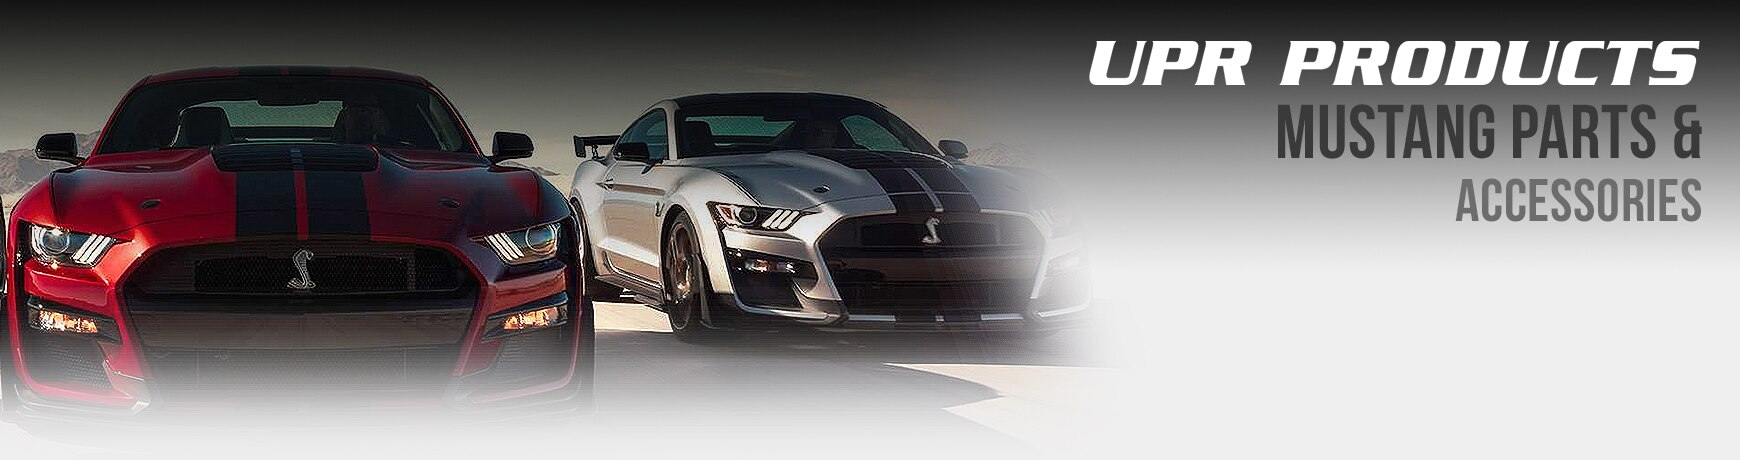 upr-mustang-parts-accessories.jpg